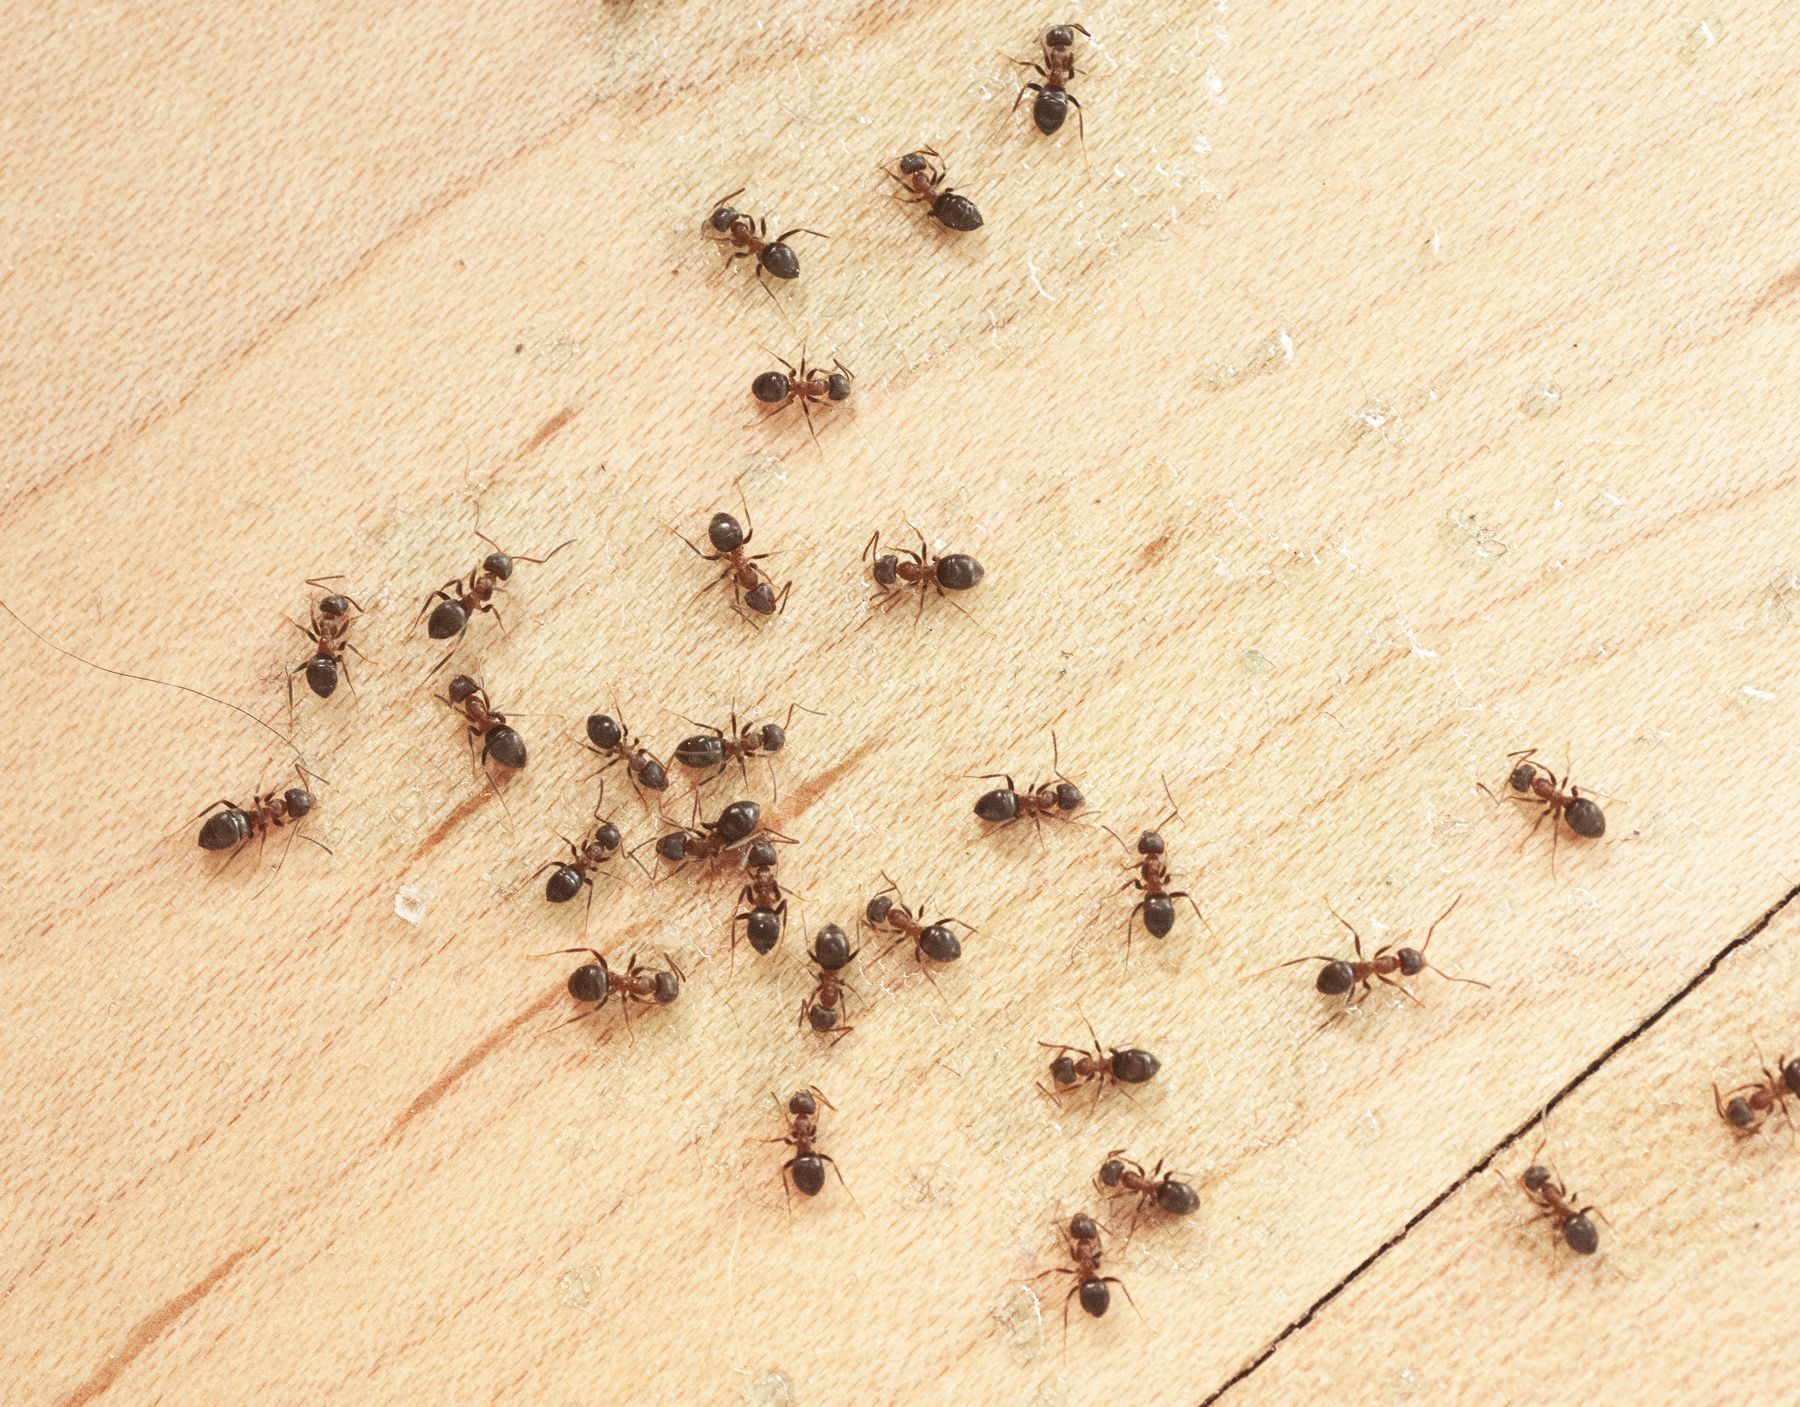 How to get rid of ants with easy methods